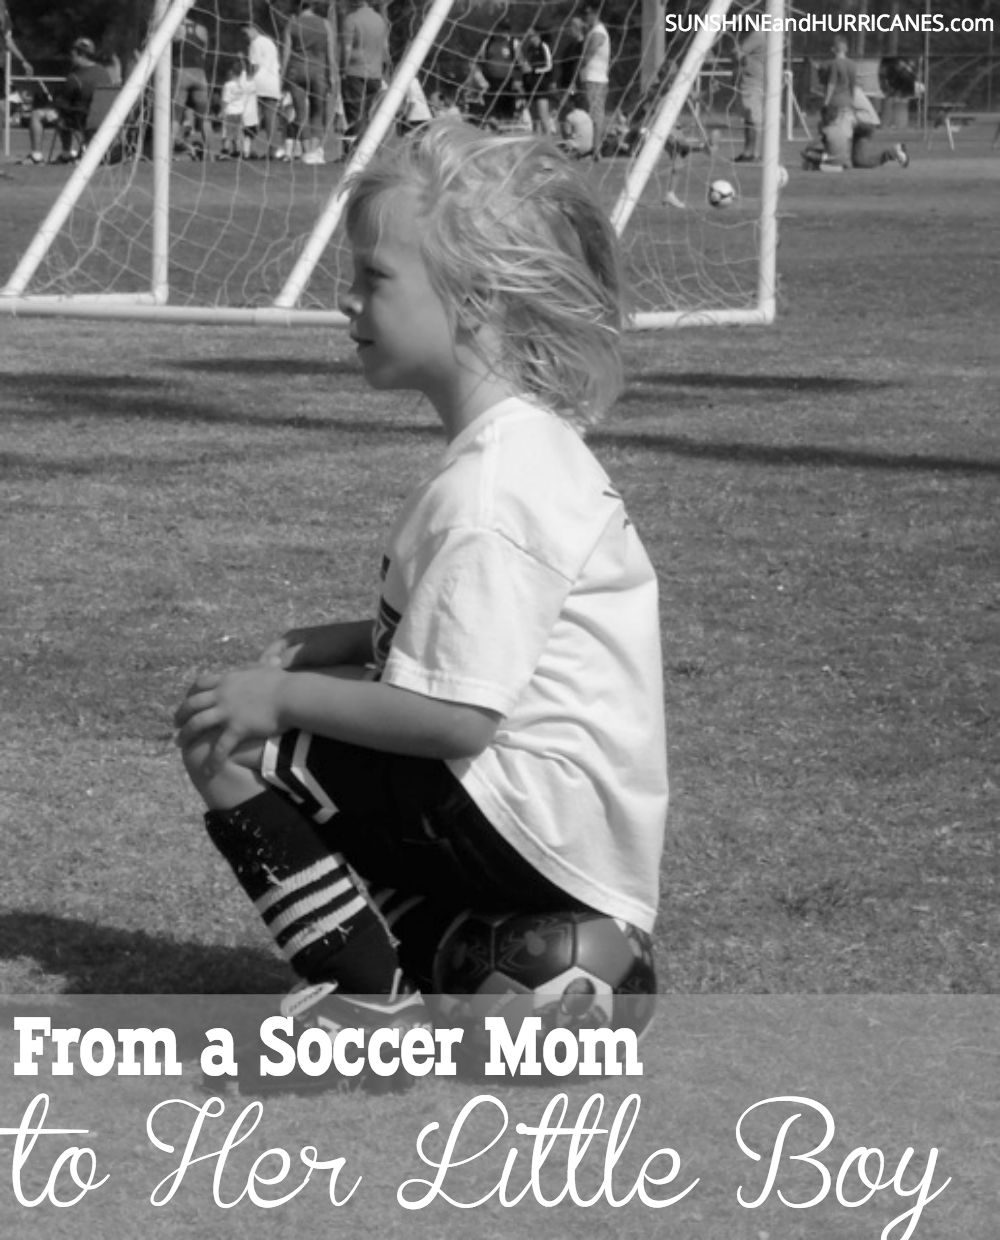 Do you often wonder if you're making the right choices when it comes to letting your kids push themselves for their passions? Sometimes we just have to realize it isn't our choices that matter. From a Soccer Mom to Her Little Boy. SunshineandHurricanes.com